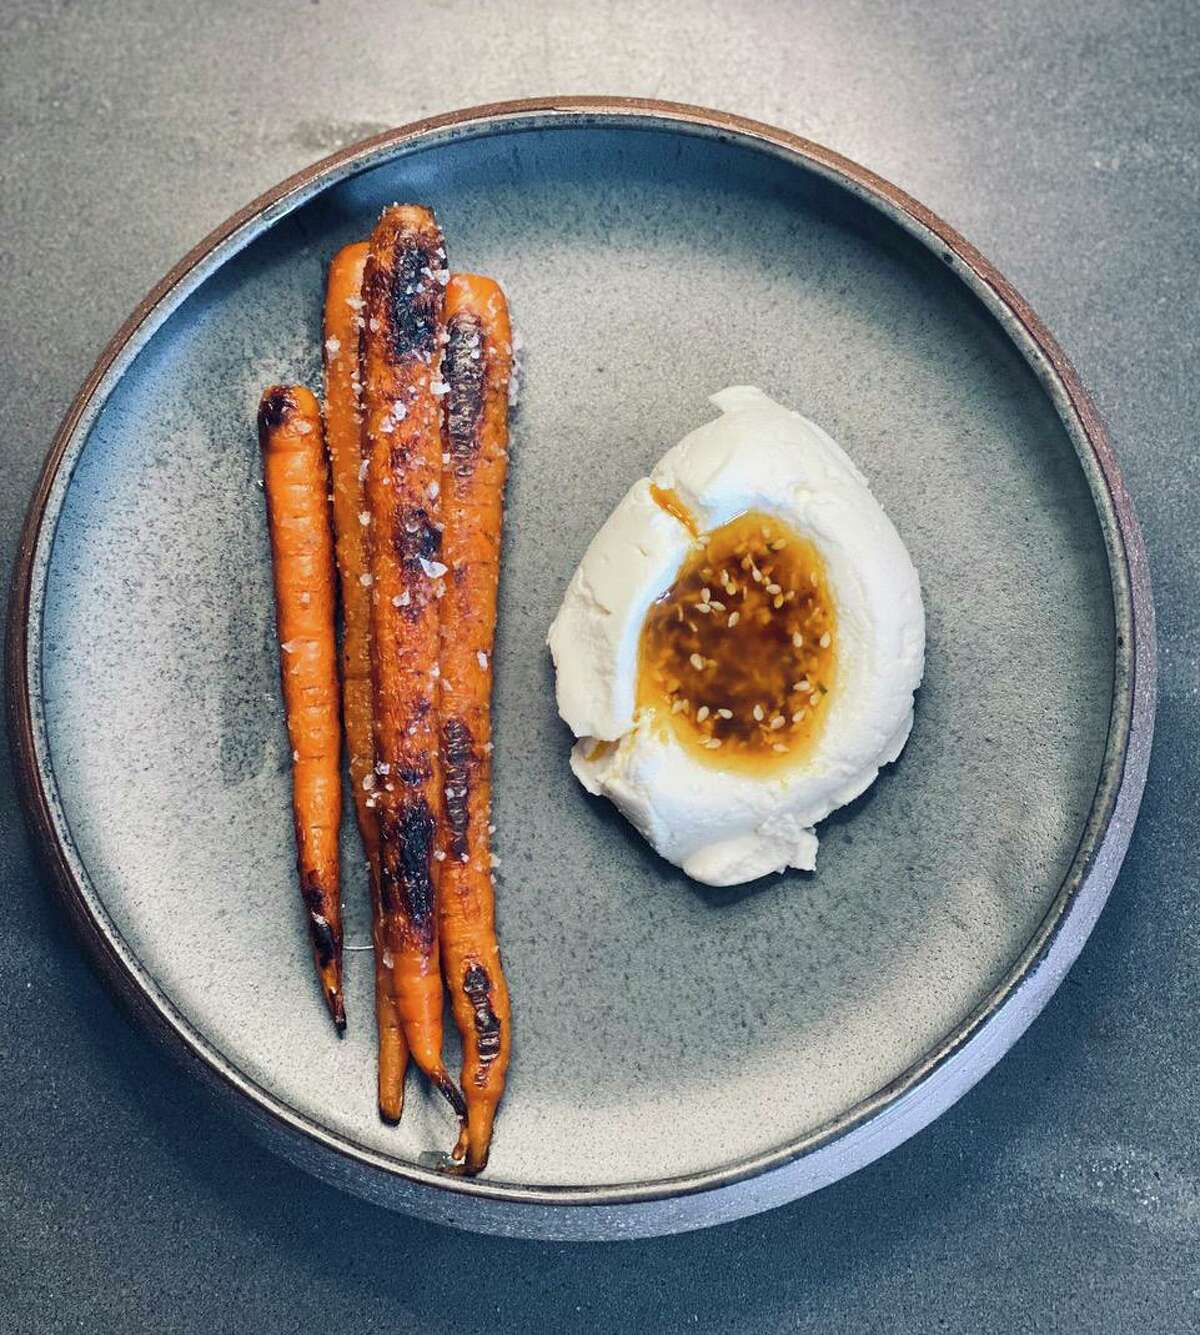 The ever-changing tasting menu might include carrots roasted in suadero fat at Kumo, a Mexican omakase restaurant coming to Olmos Park in November from the Mixtli team.